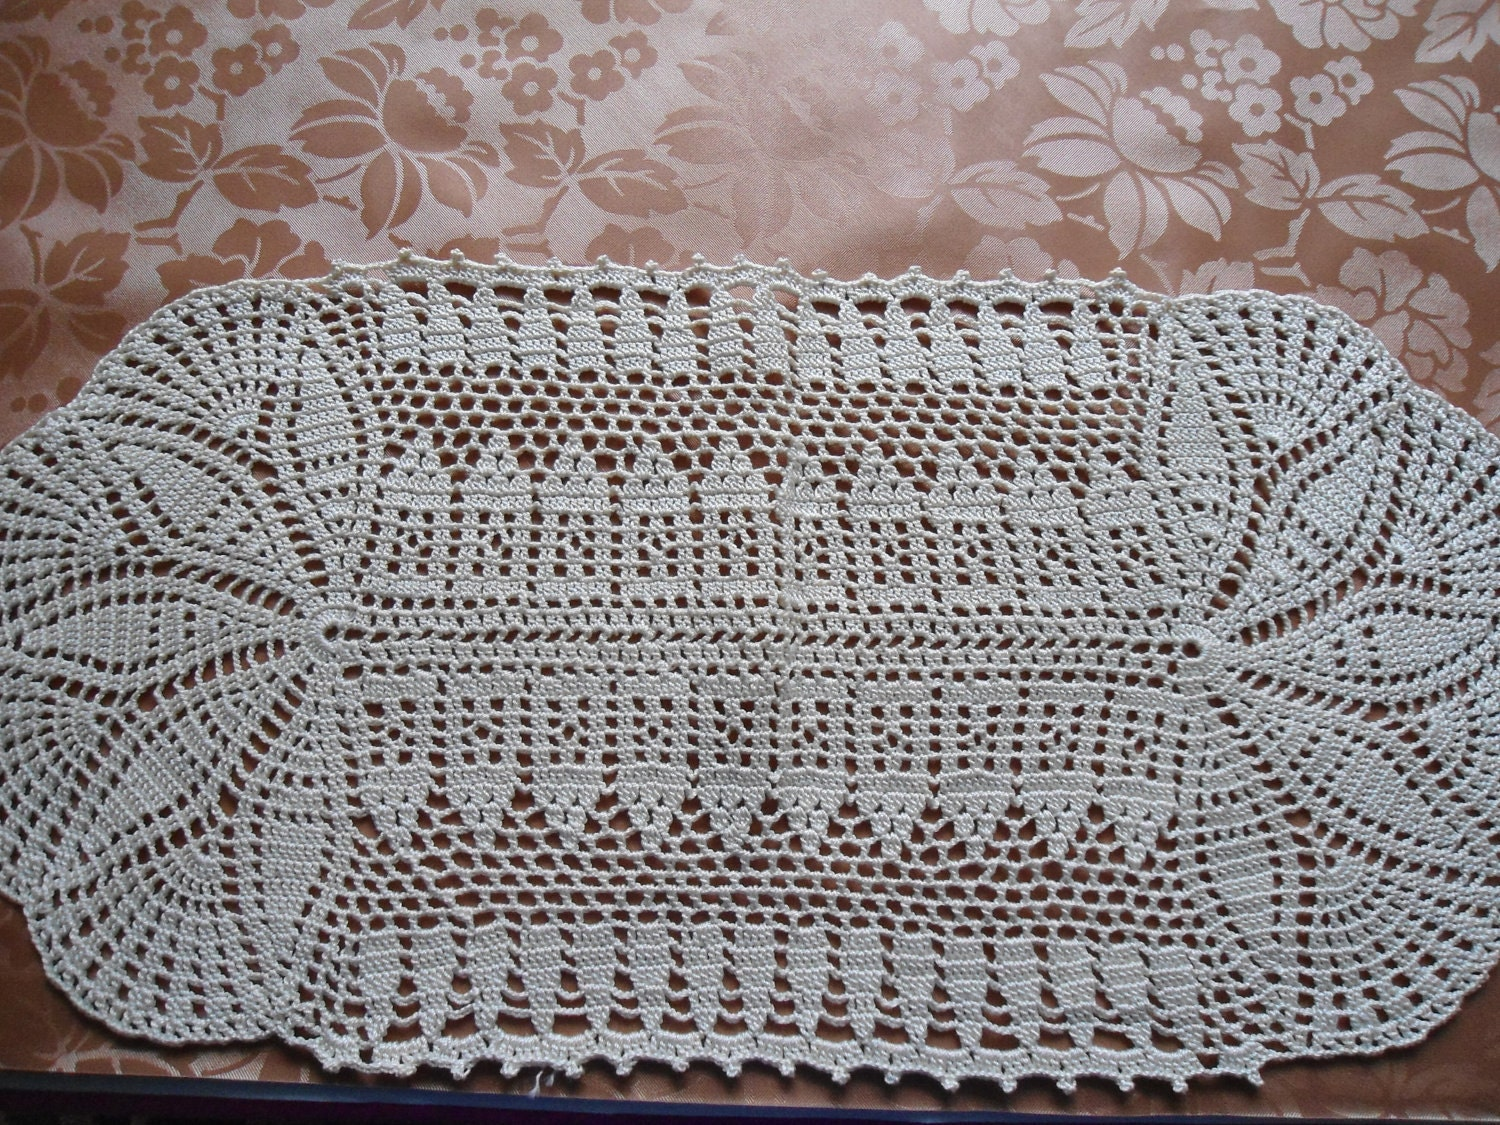 Crochet Patterns Oval Shape : Oval Tablecloth Crochet - Crochet Club